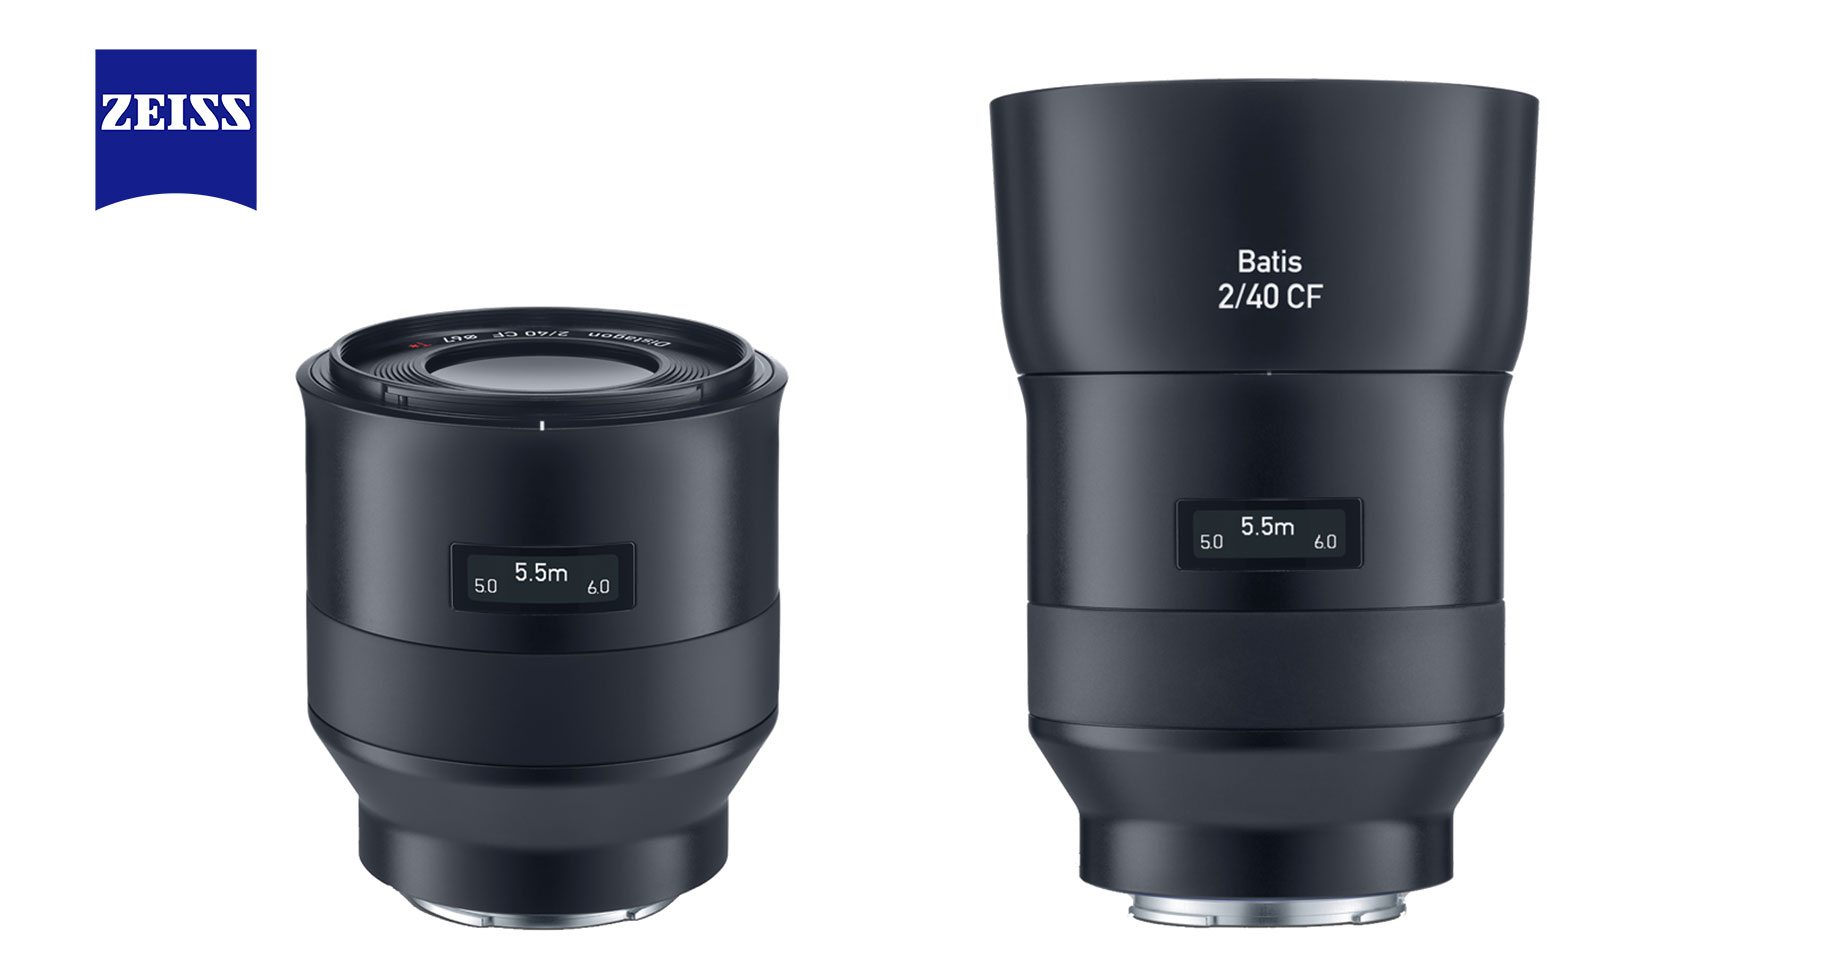 NOW IN STOCK: The Zeiss Batis 2/40 CF